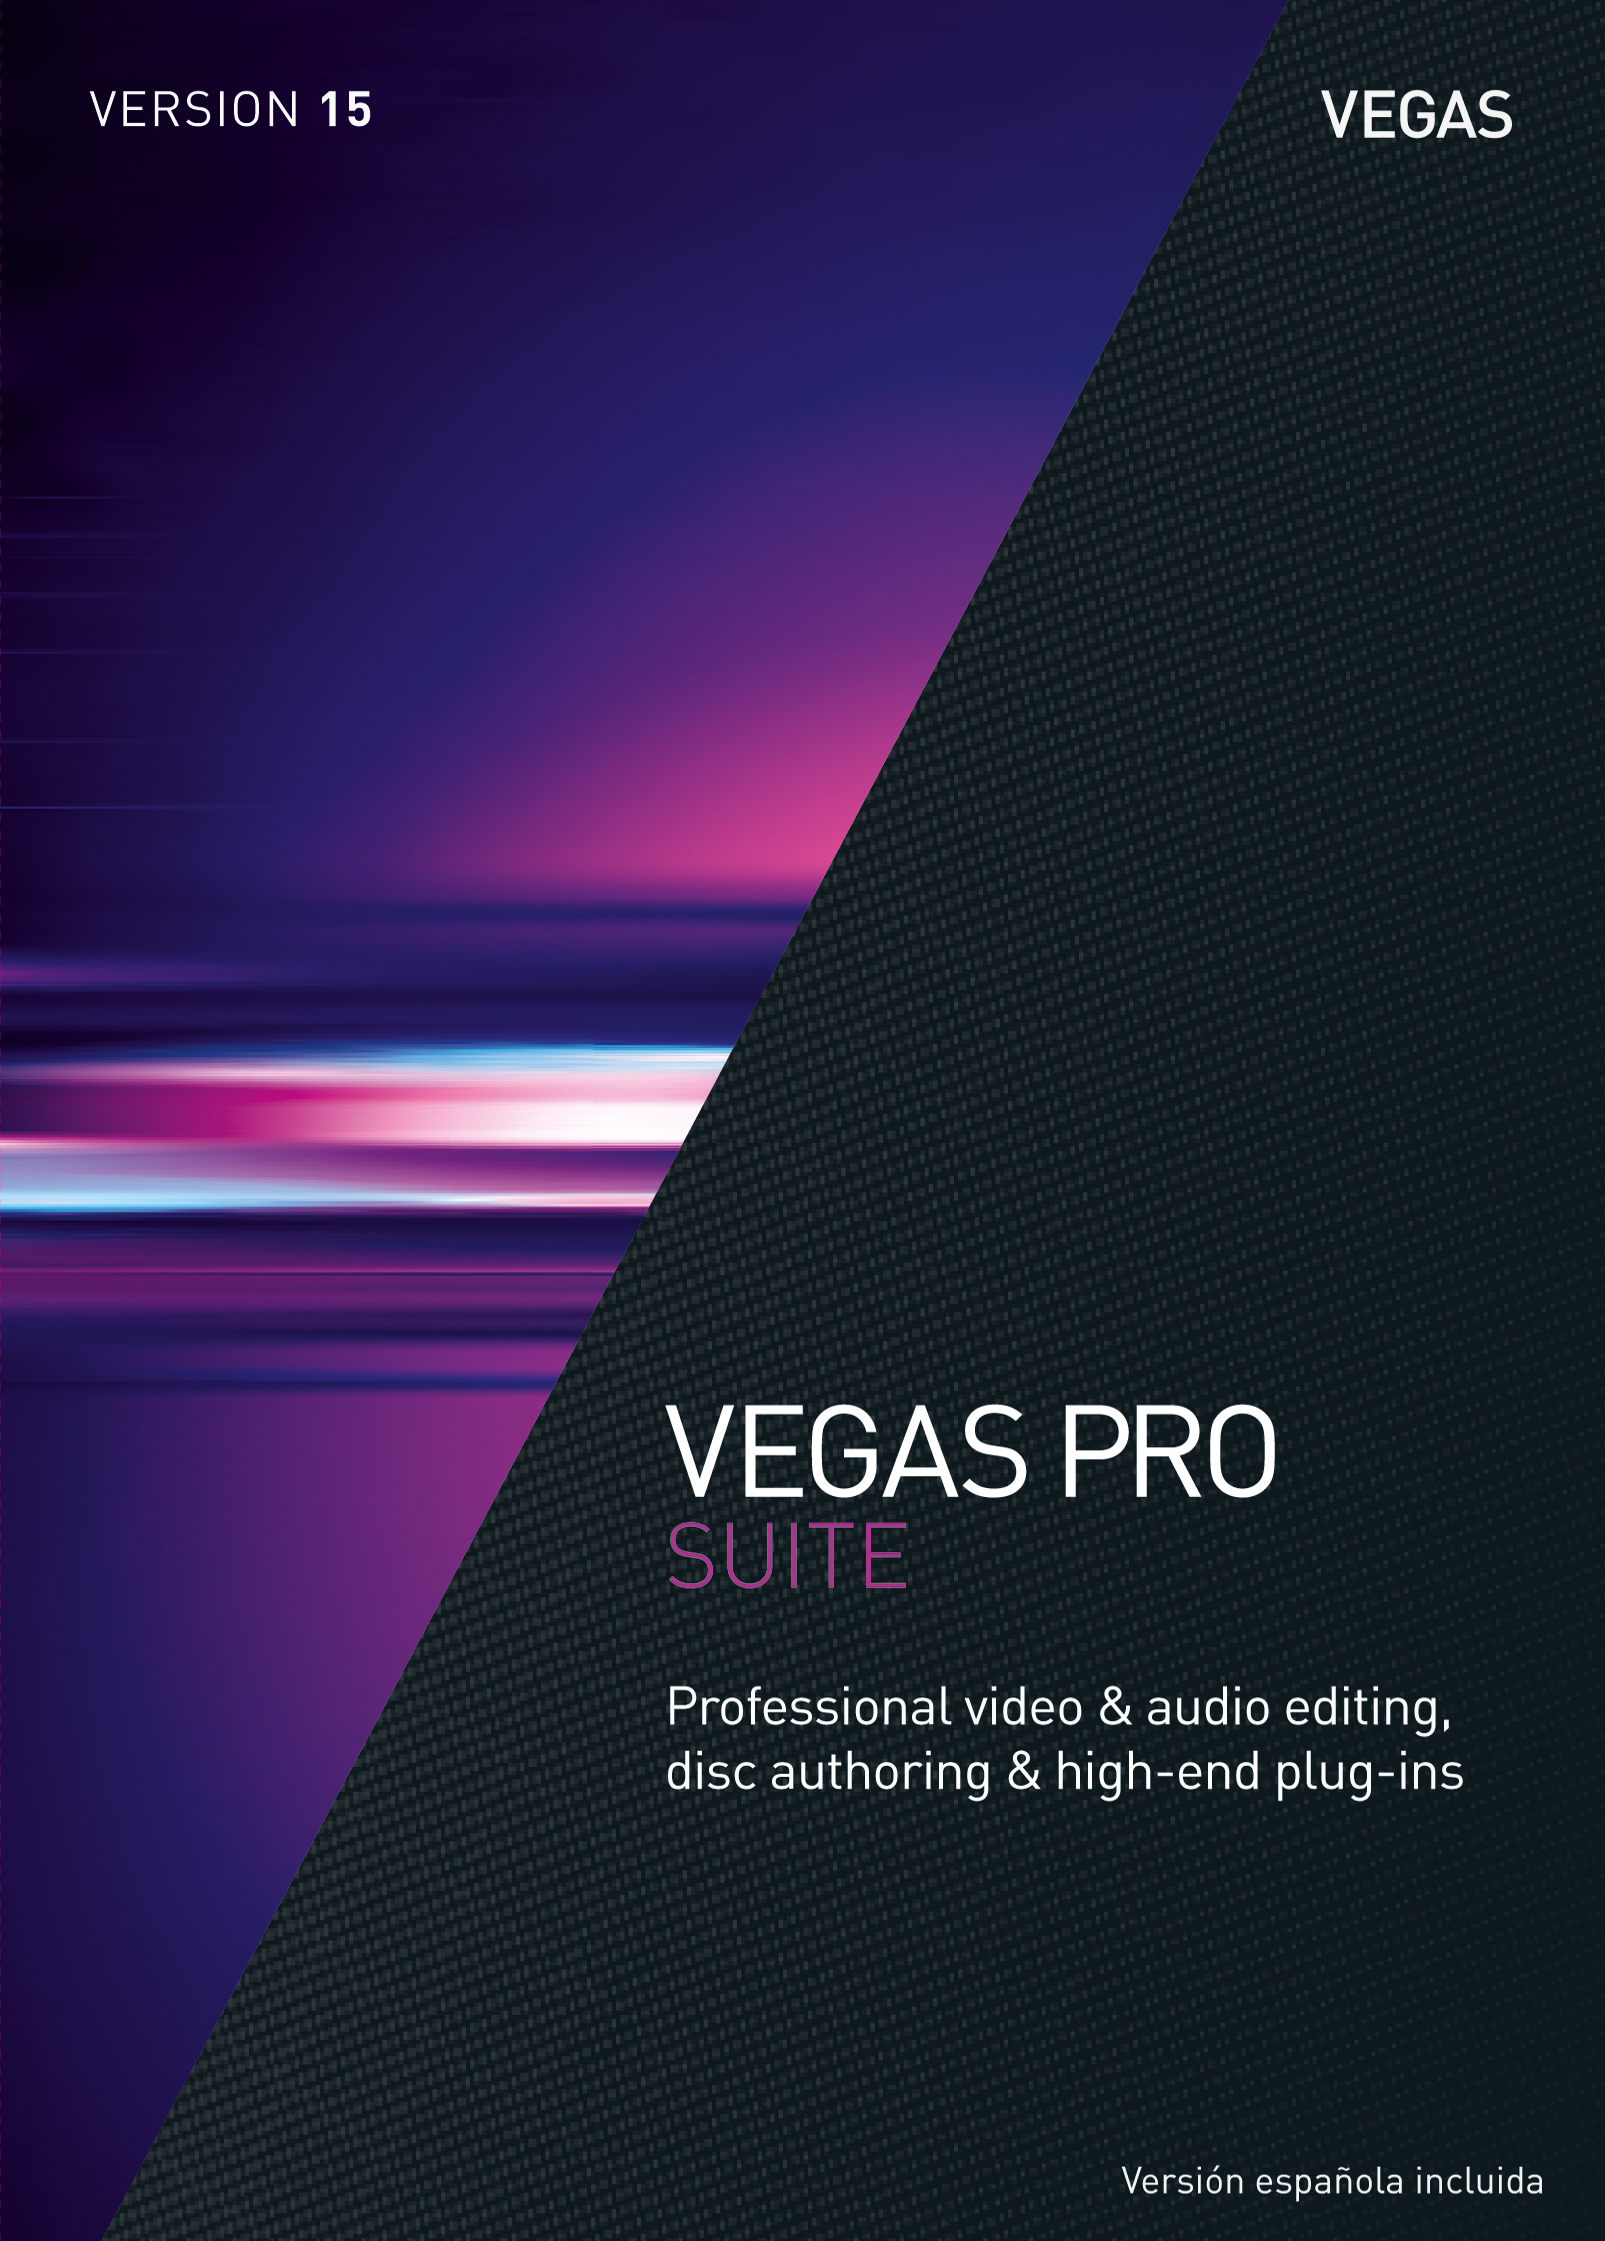 VEGAS Pro 15 Suite – Professional video & audio editing, disc authoring...